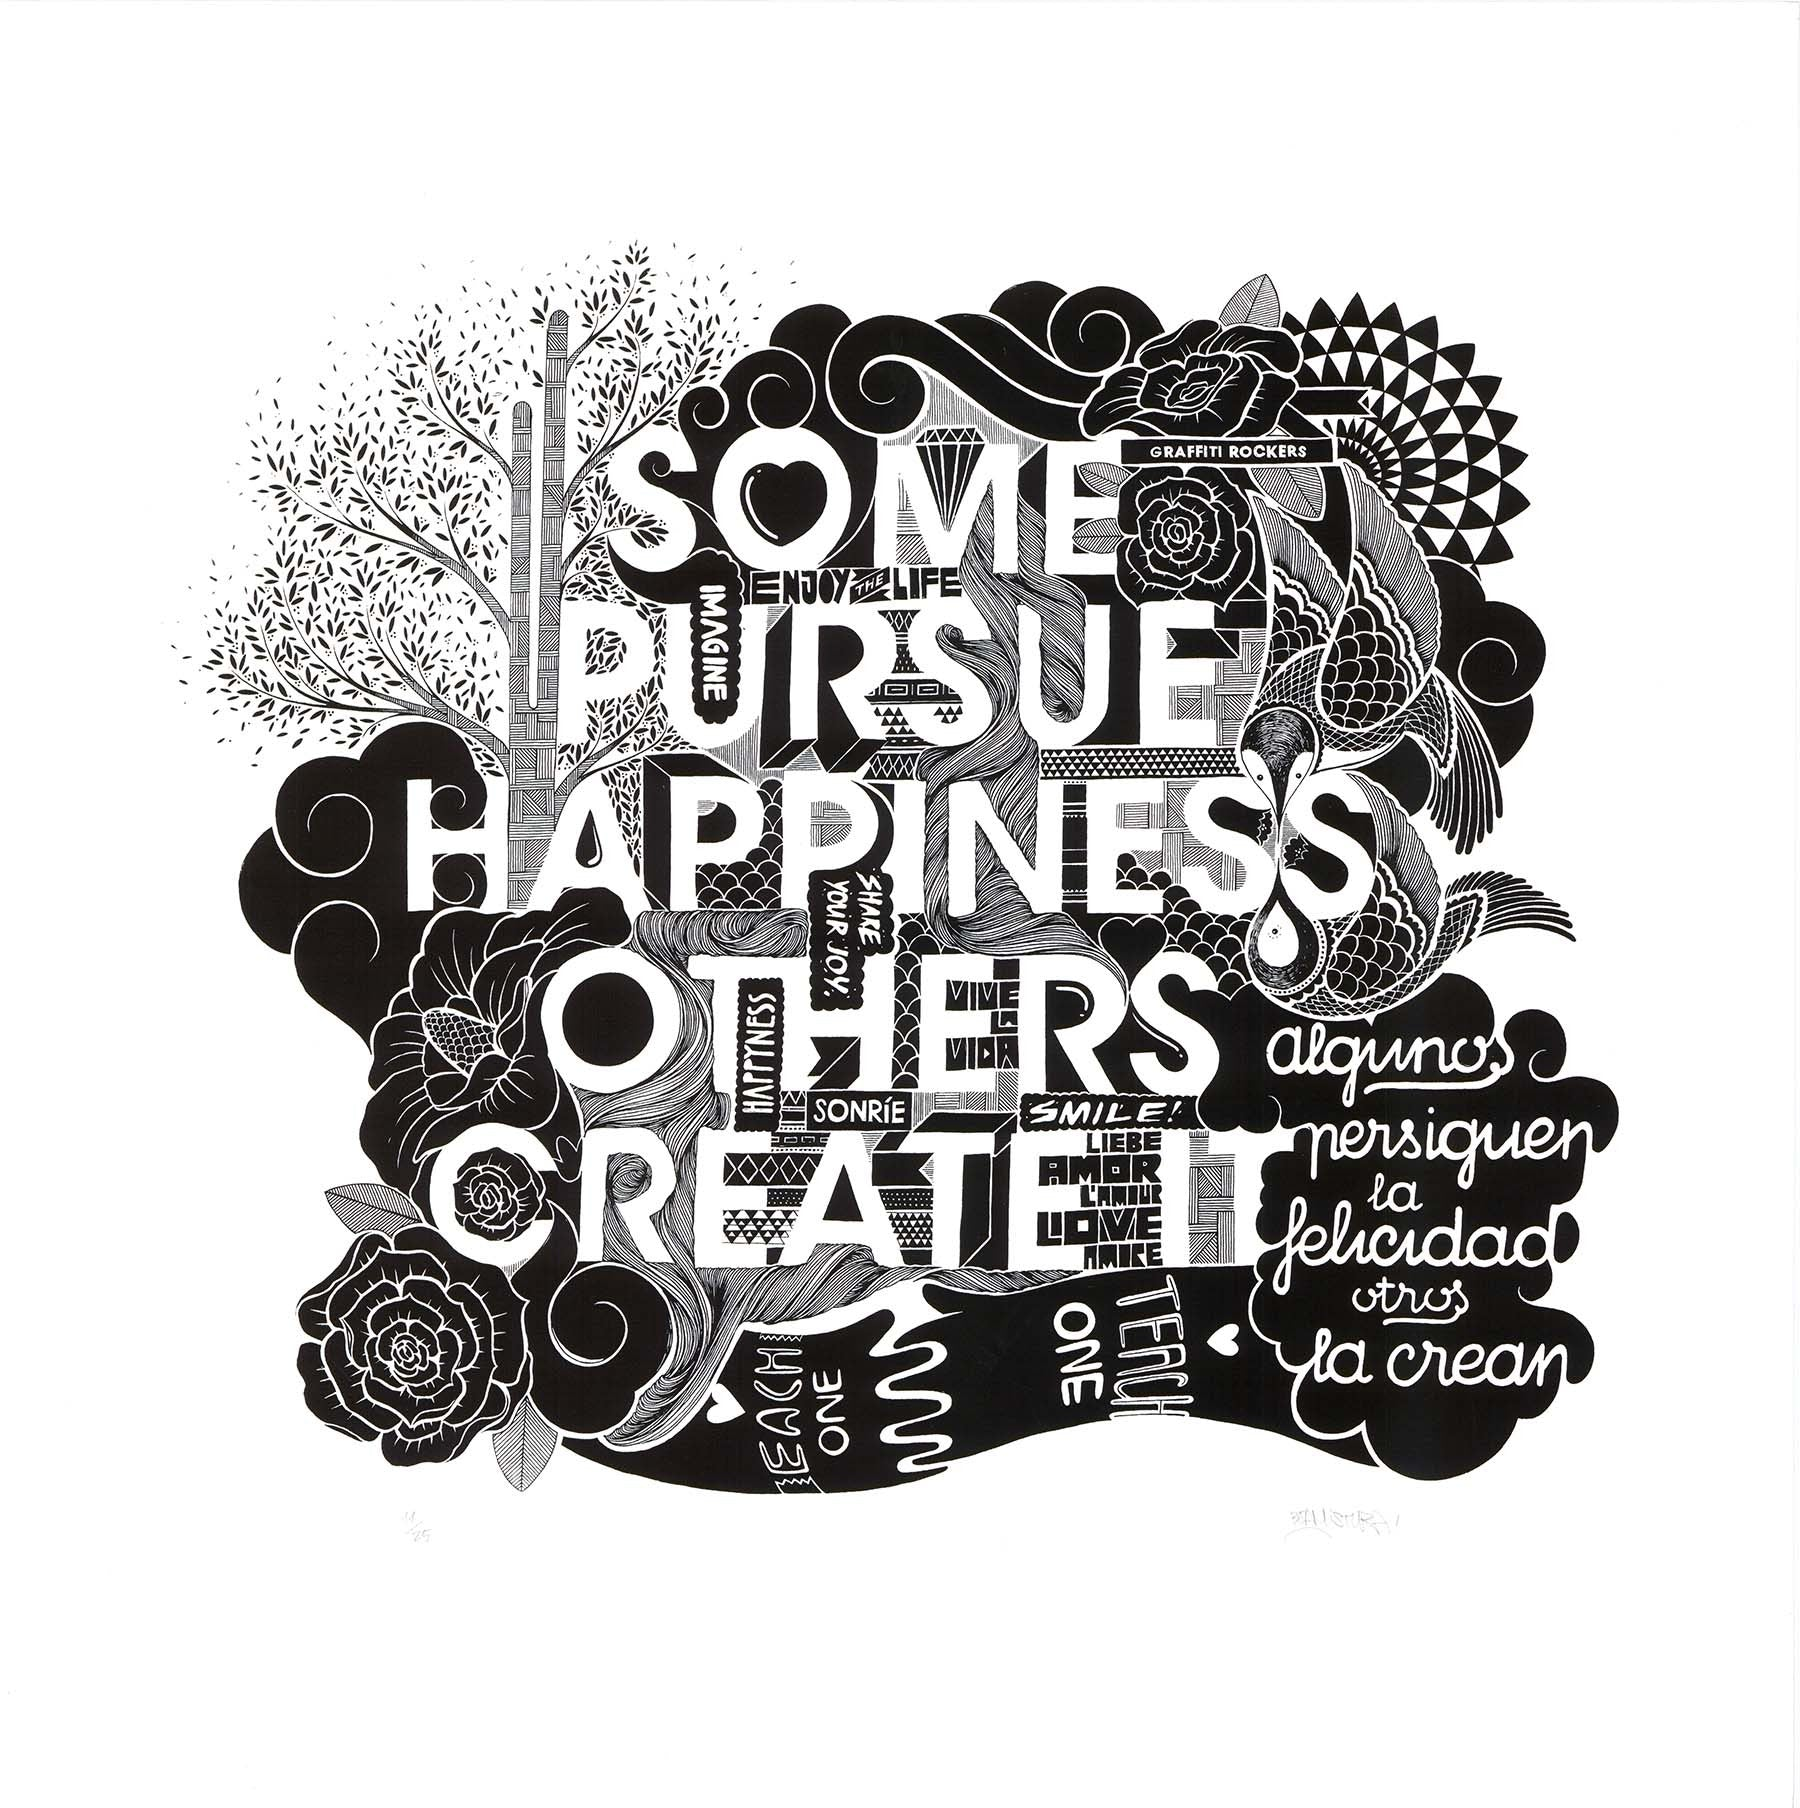 Boamistura  artwork- Some pursue happiness others create it - Gunter Gallery